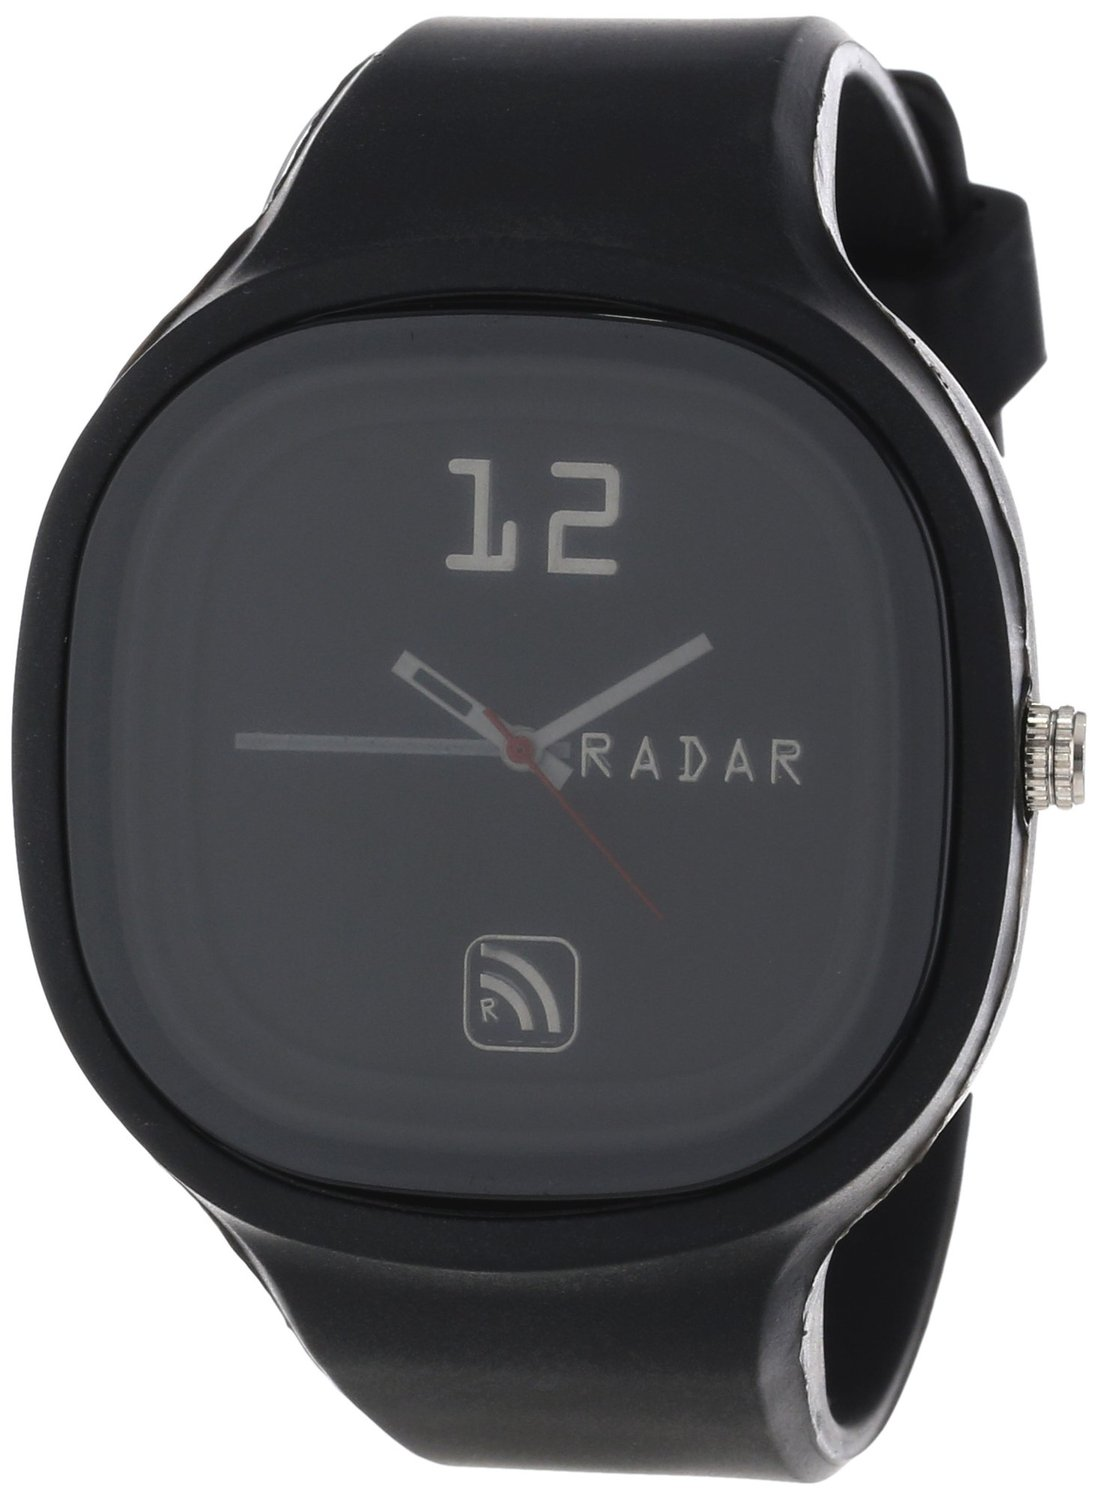 RADAR Watches Unisex AGBKM-0001 The Agent Interchangeable Silicone Analog Watch